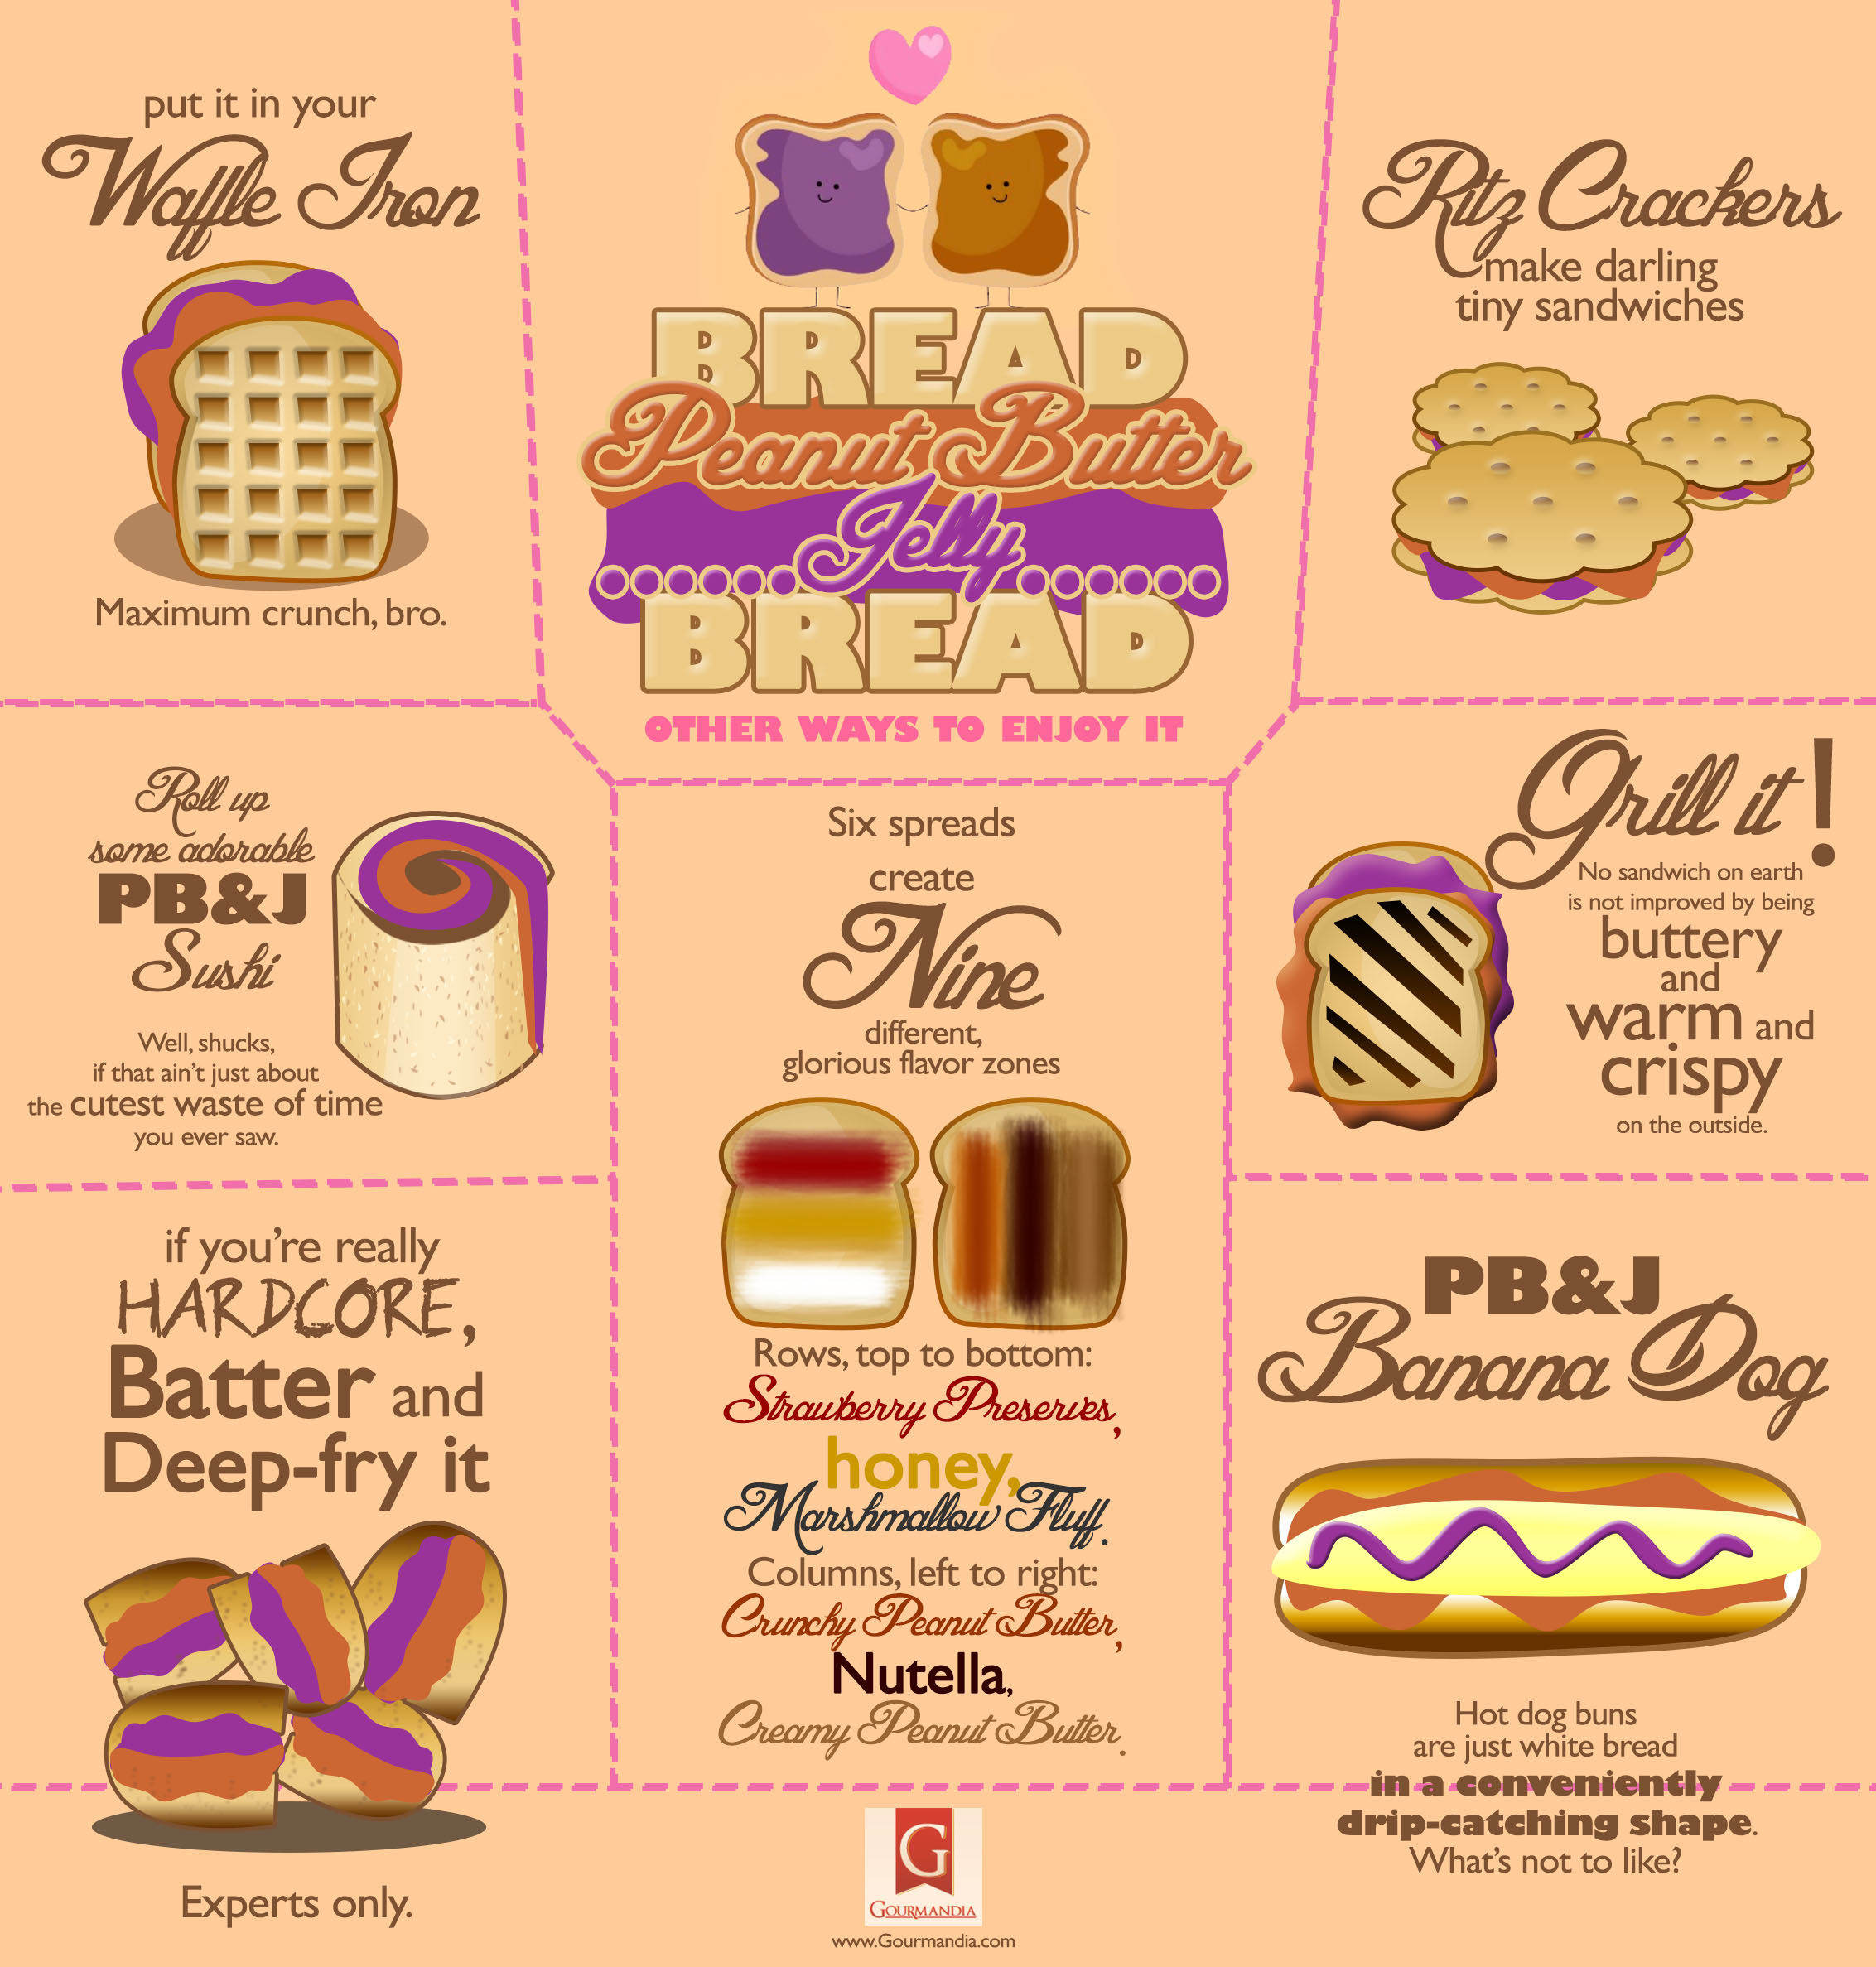 Peanut Butter And Jelly Other Ways to Enjoy It